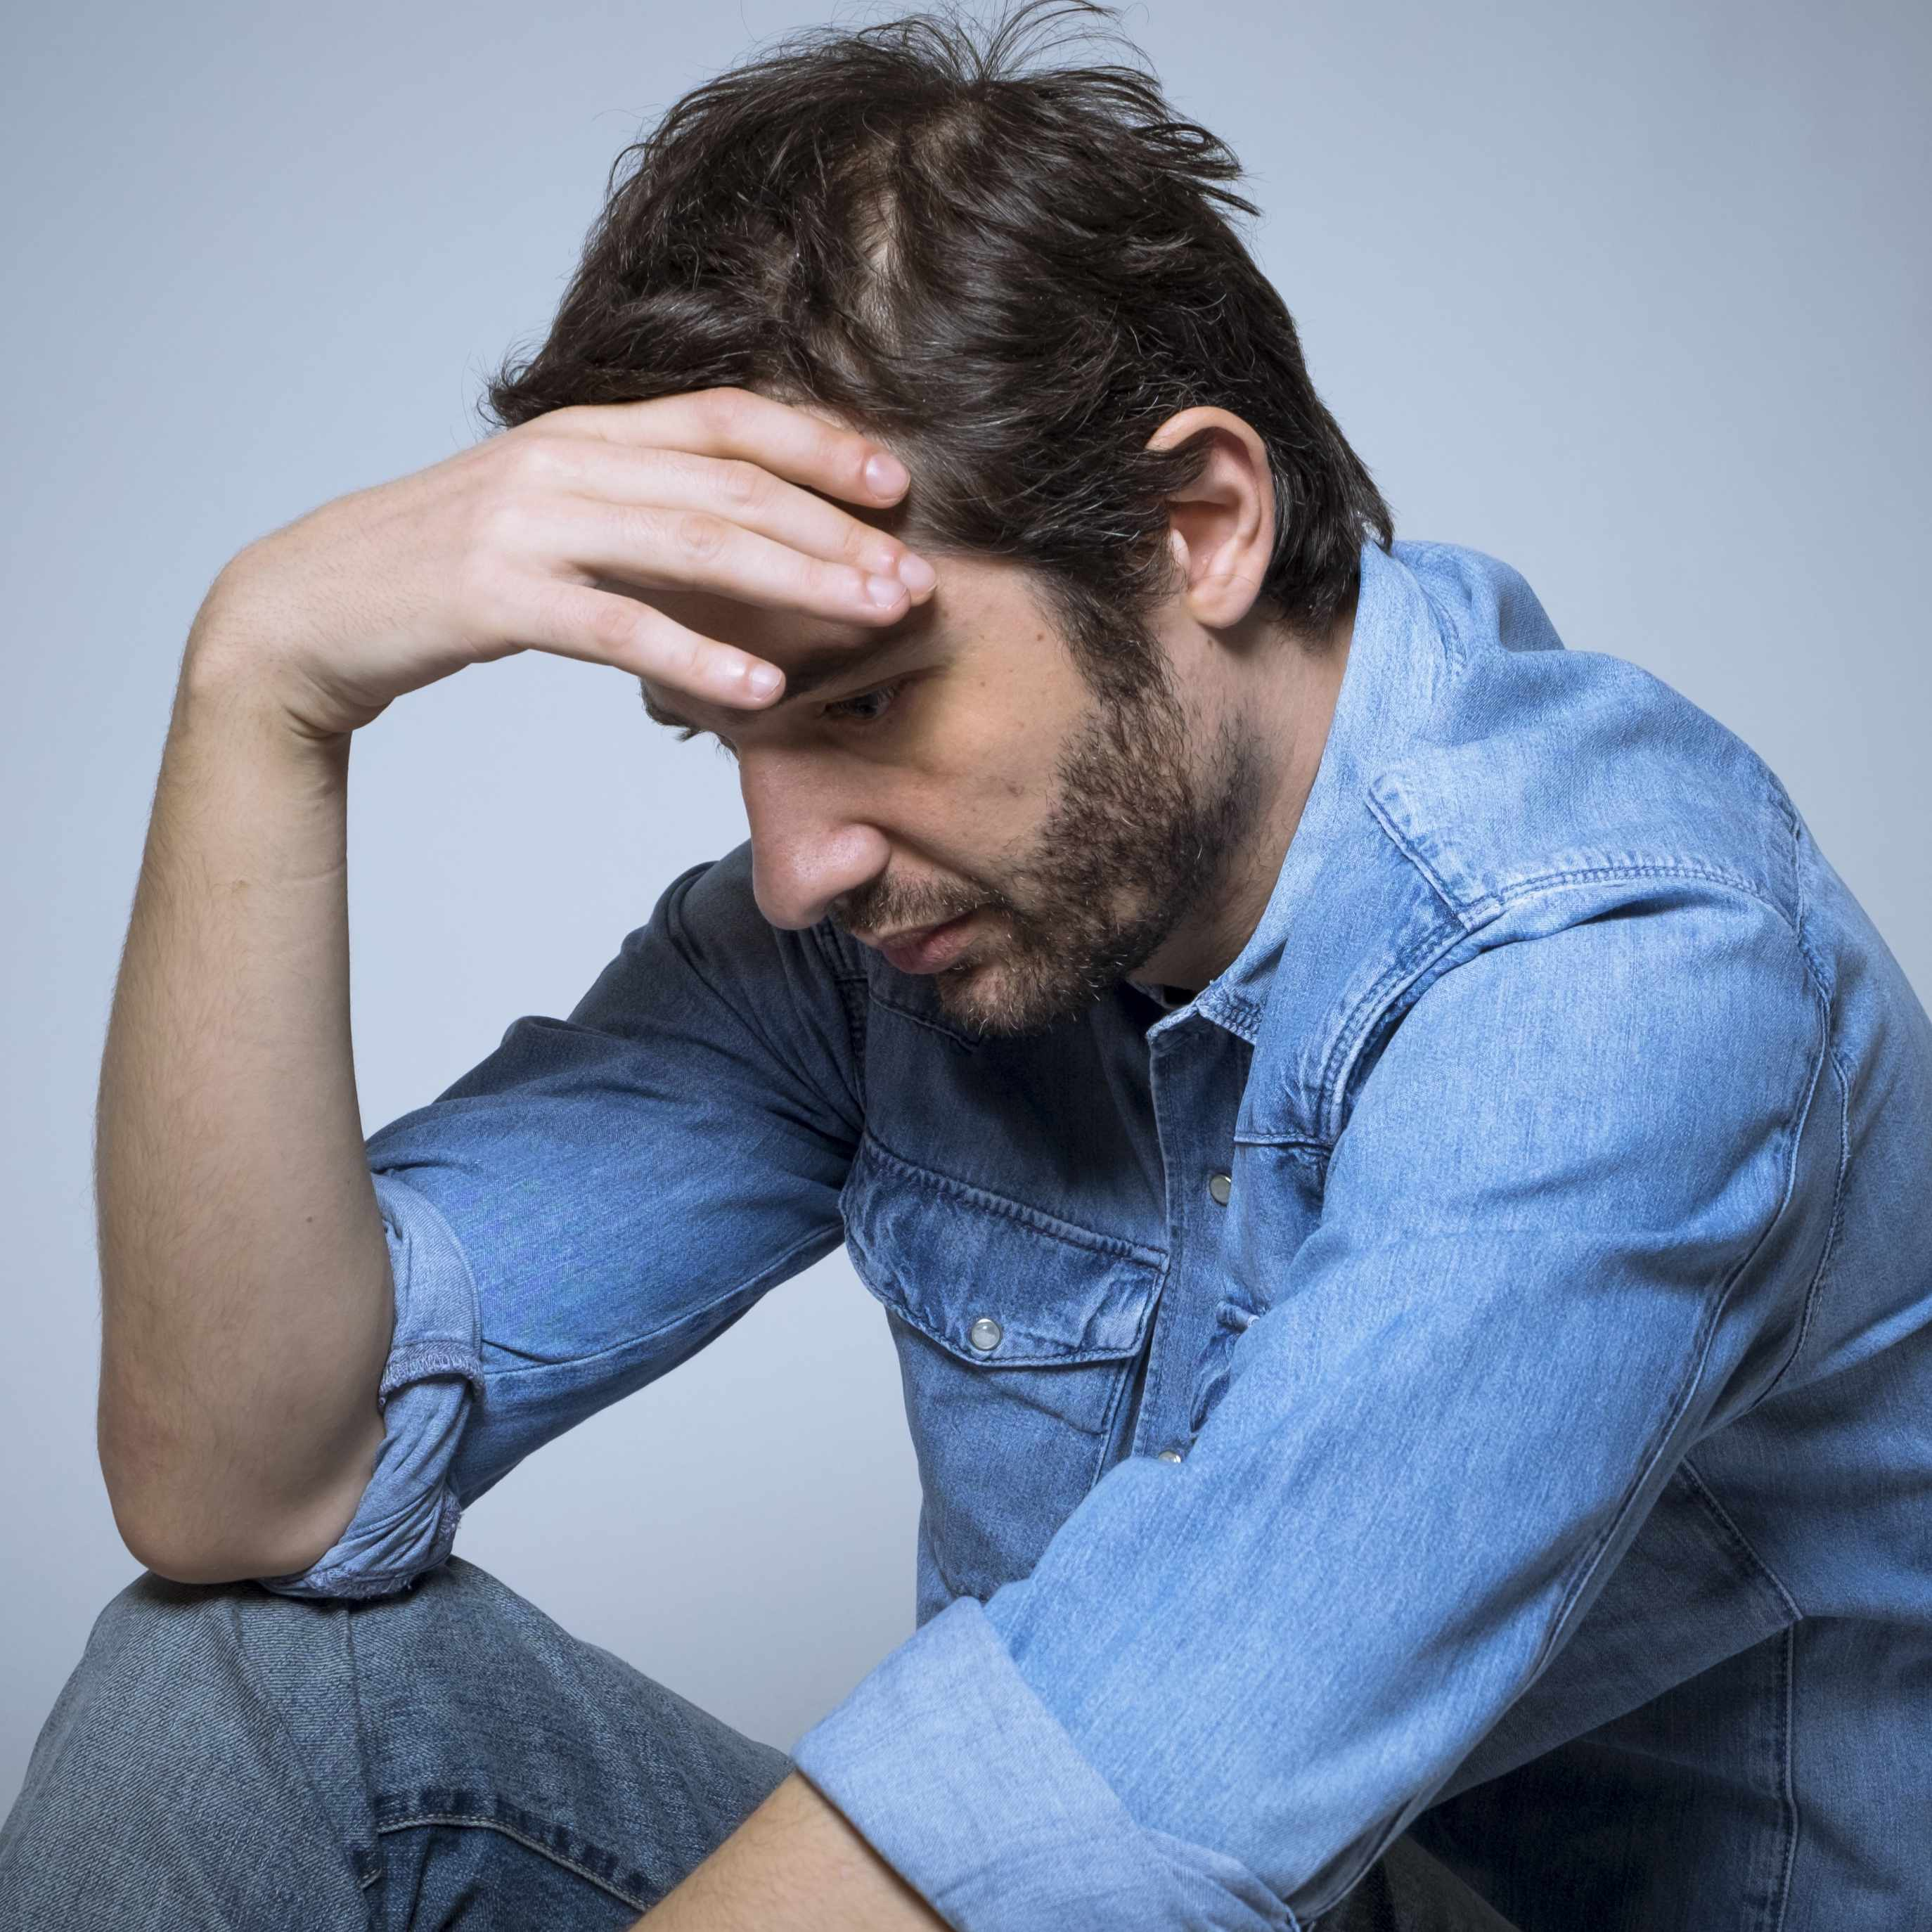 a young man depressed holding his head